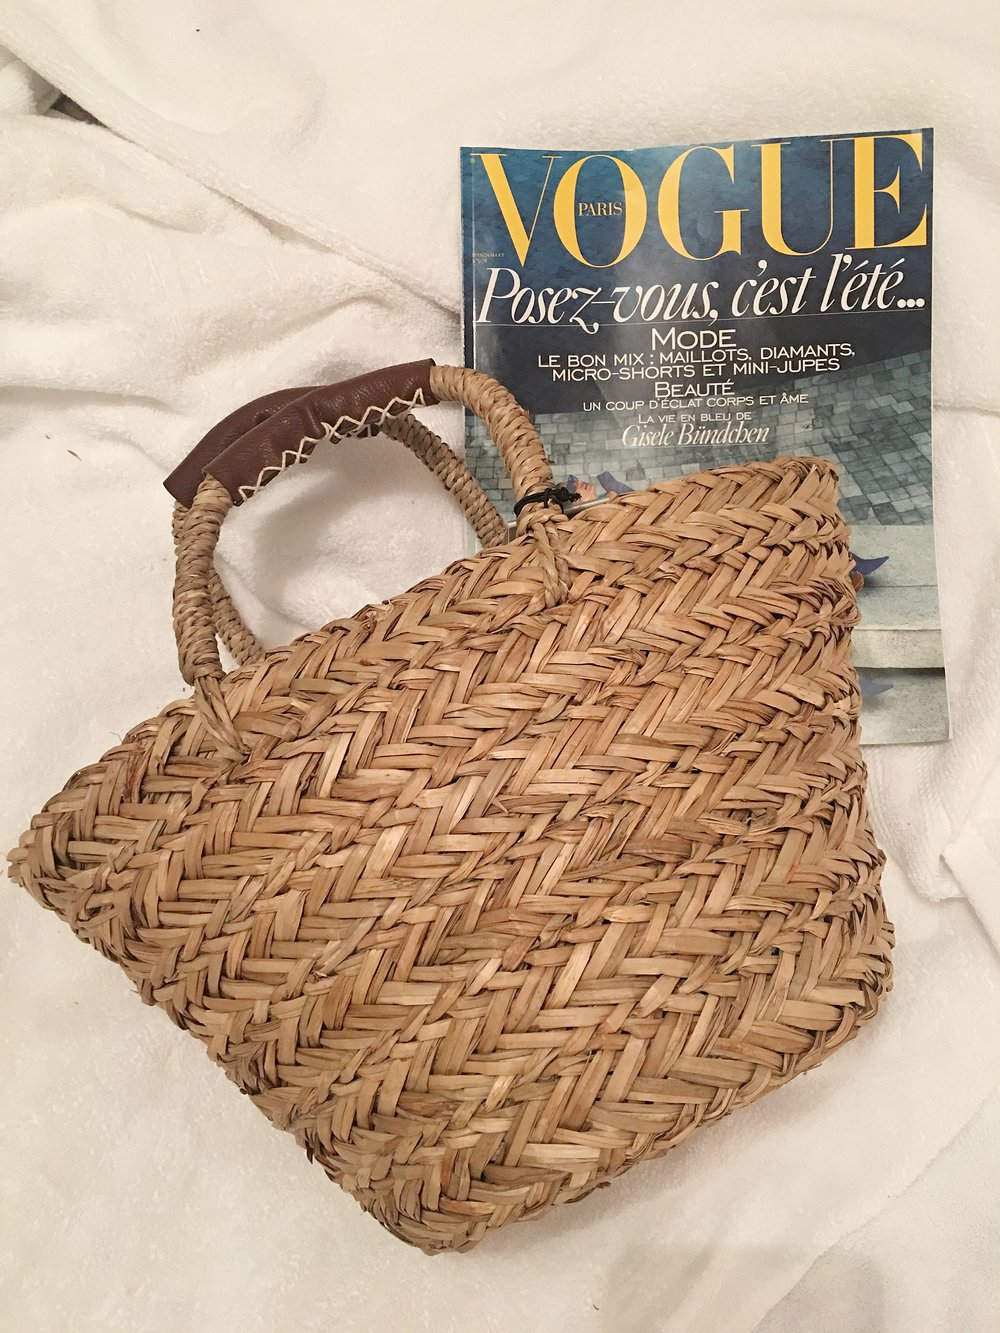 An itsy bitsy teeny weeny hand woven beach basket from The Quintessential. All of my favourite style bloggers have one! And a copy of Vogue Paris... if you're as pretentious as me you can have it too! 🙌🏻